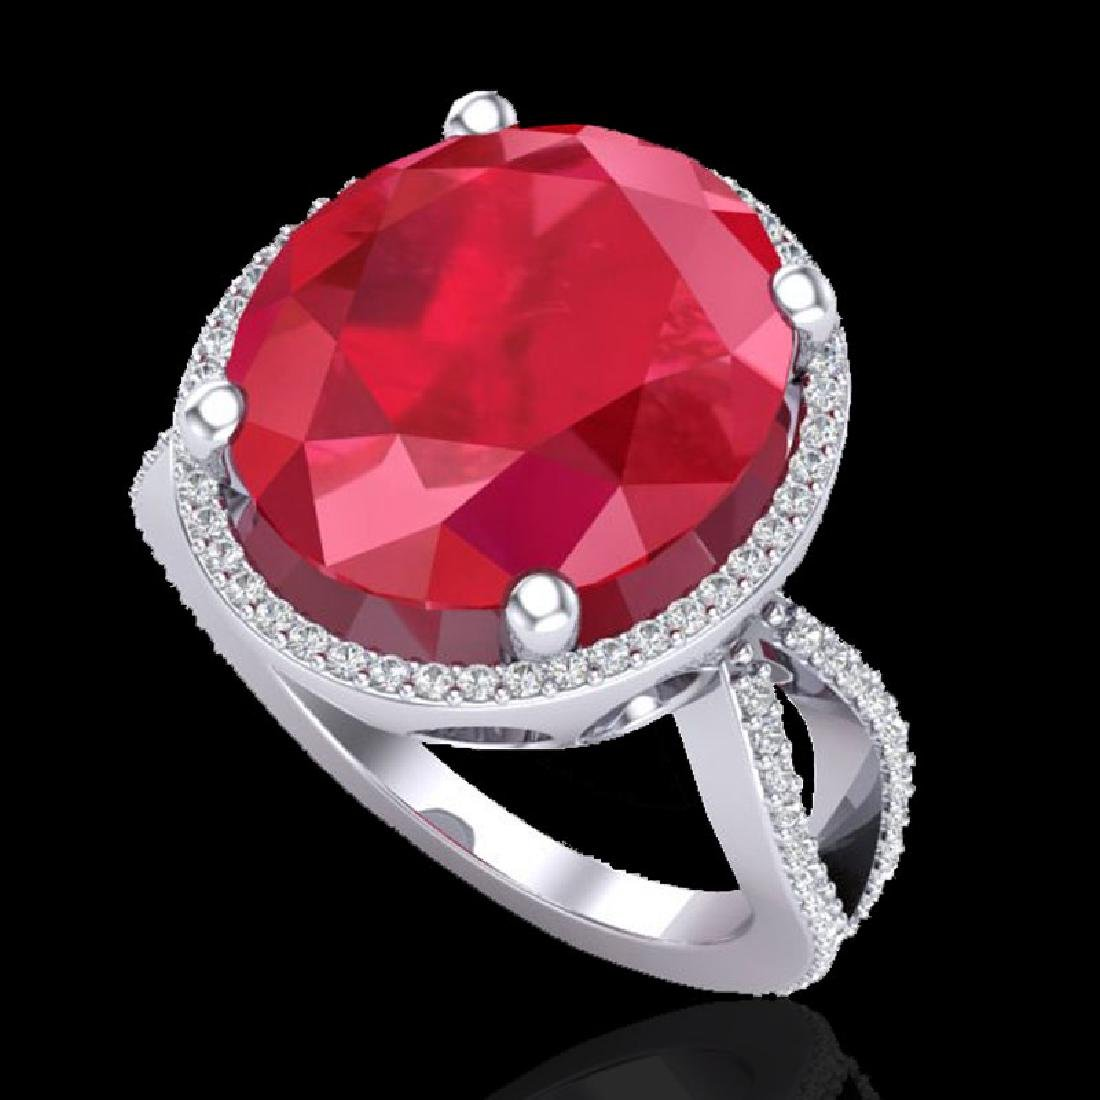 12 CTW Ruby & Micro Pave VS/SI Diamond Halo Ring 18K - 2